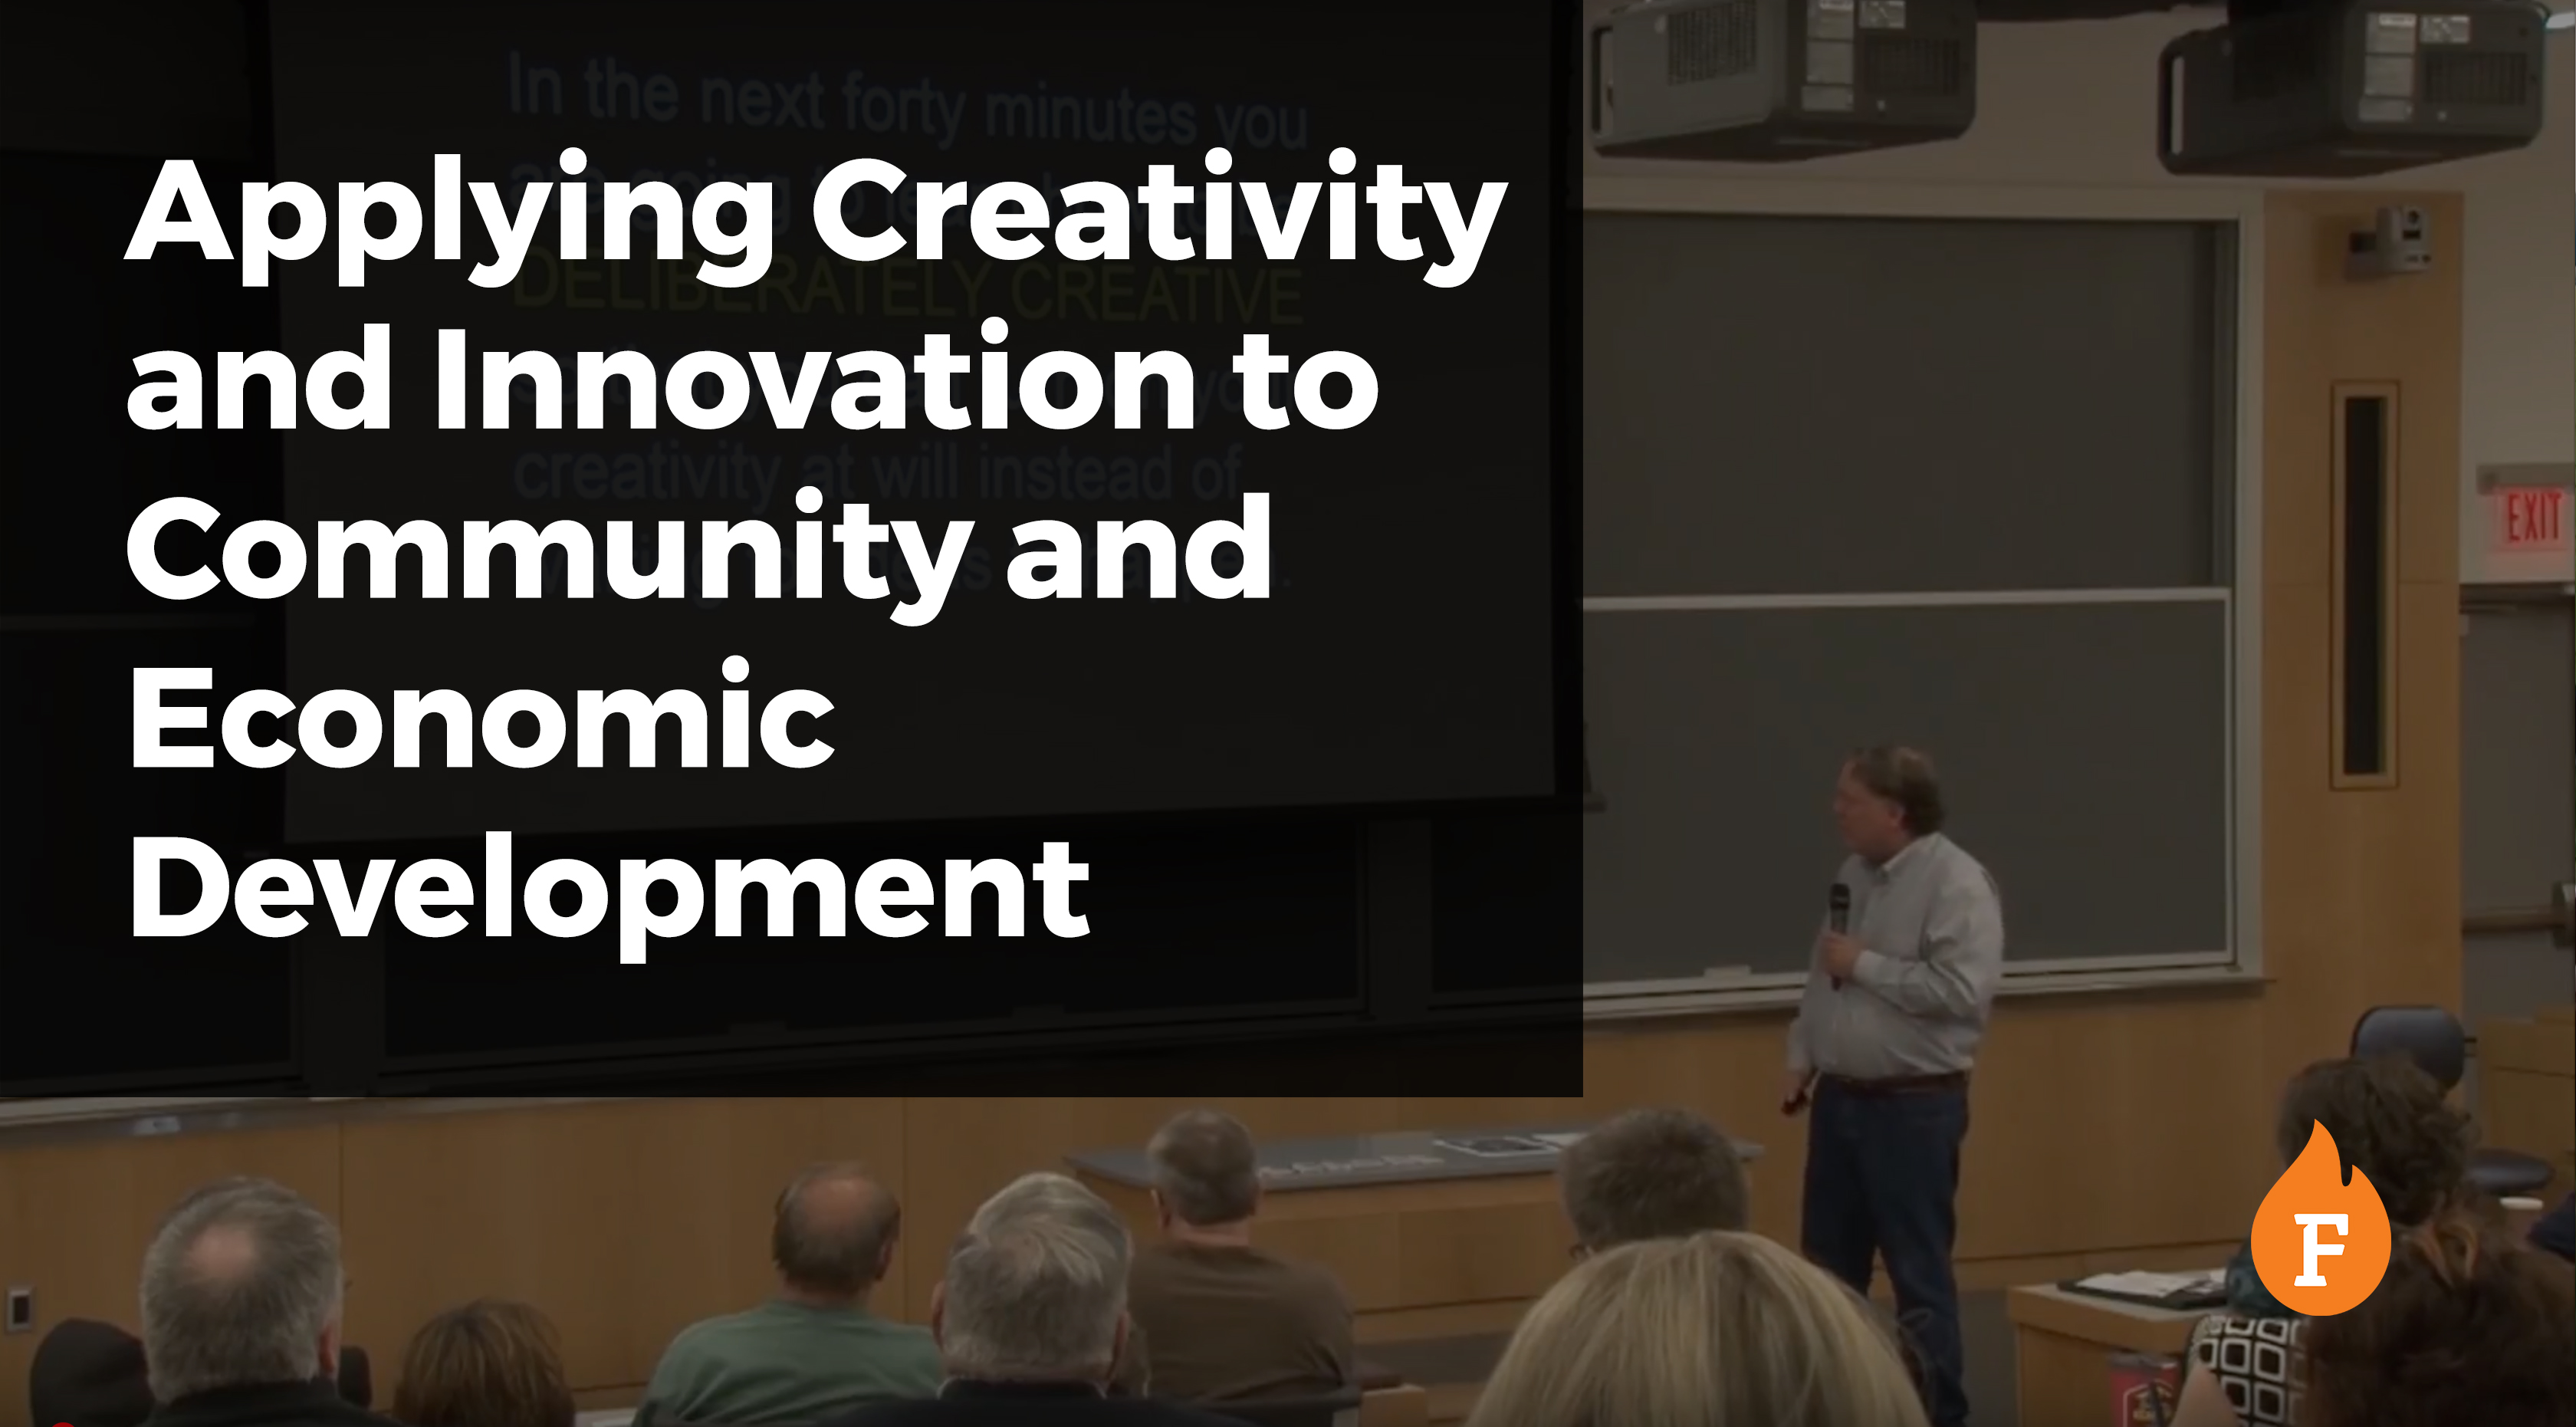 VIDEO: Applying Creativity and Innovation to Community and Economic Development